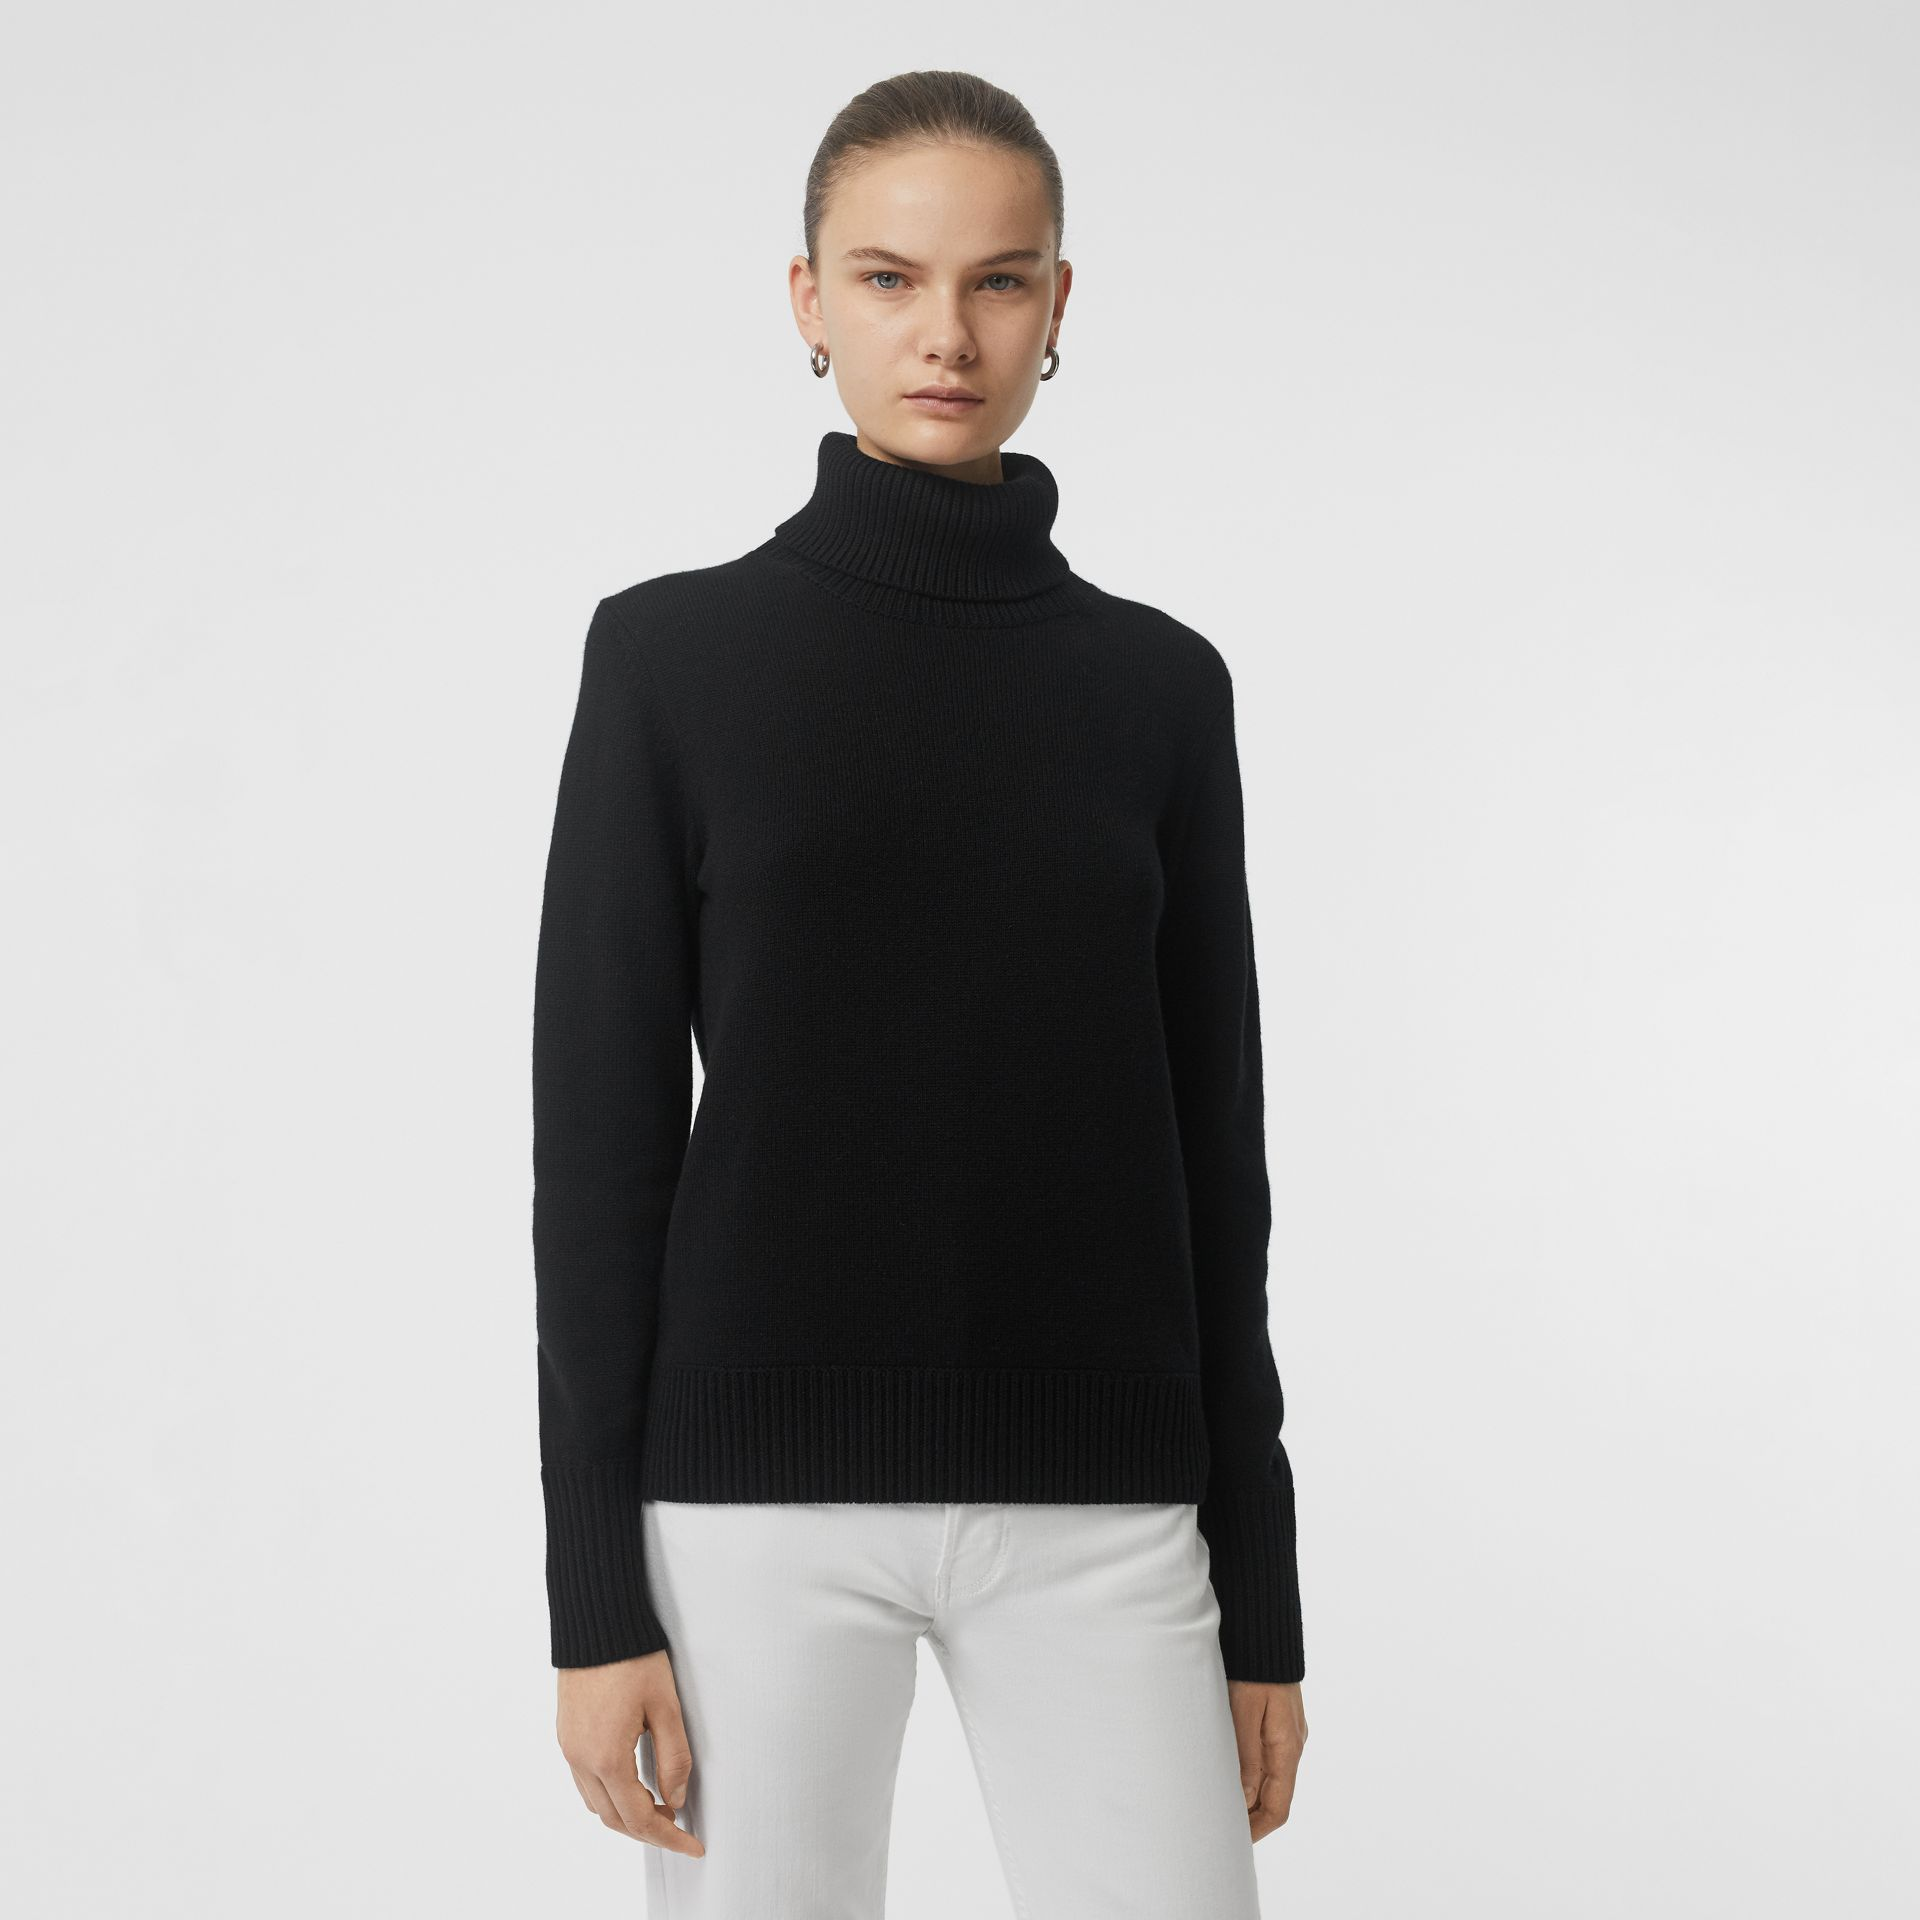 Embroidered Crest Cashmere Roll-neck Sweater in Black - Women | Burberry - gallery image 0